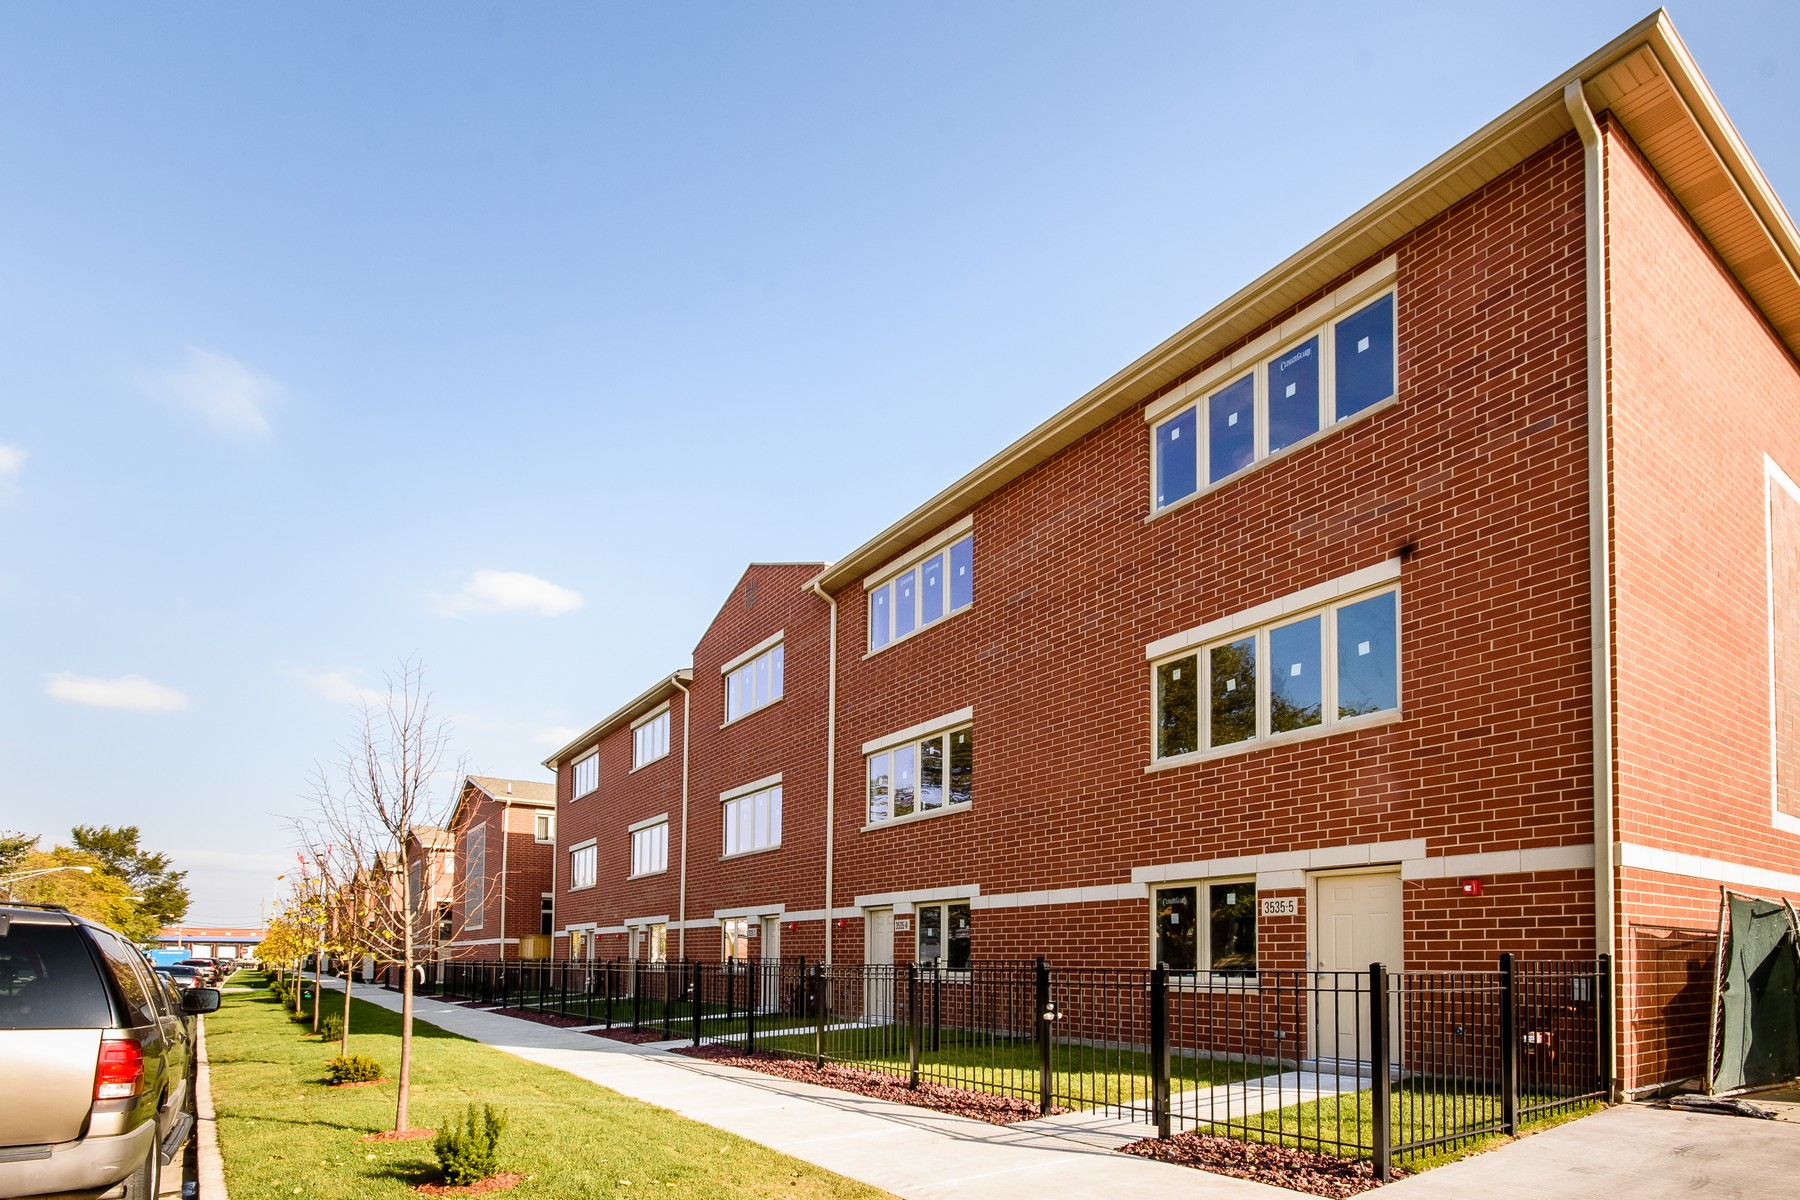 多棟聯建住宅 為 出售 在 Developer's Model Home 3541 S Maplewood Avenue Unit 1, McKinley Park, Chicago, 伊利諾斯州, 60632 美國